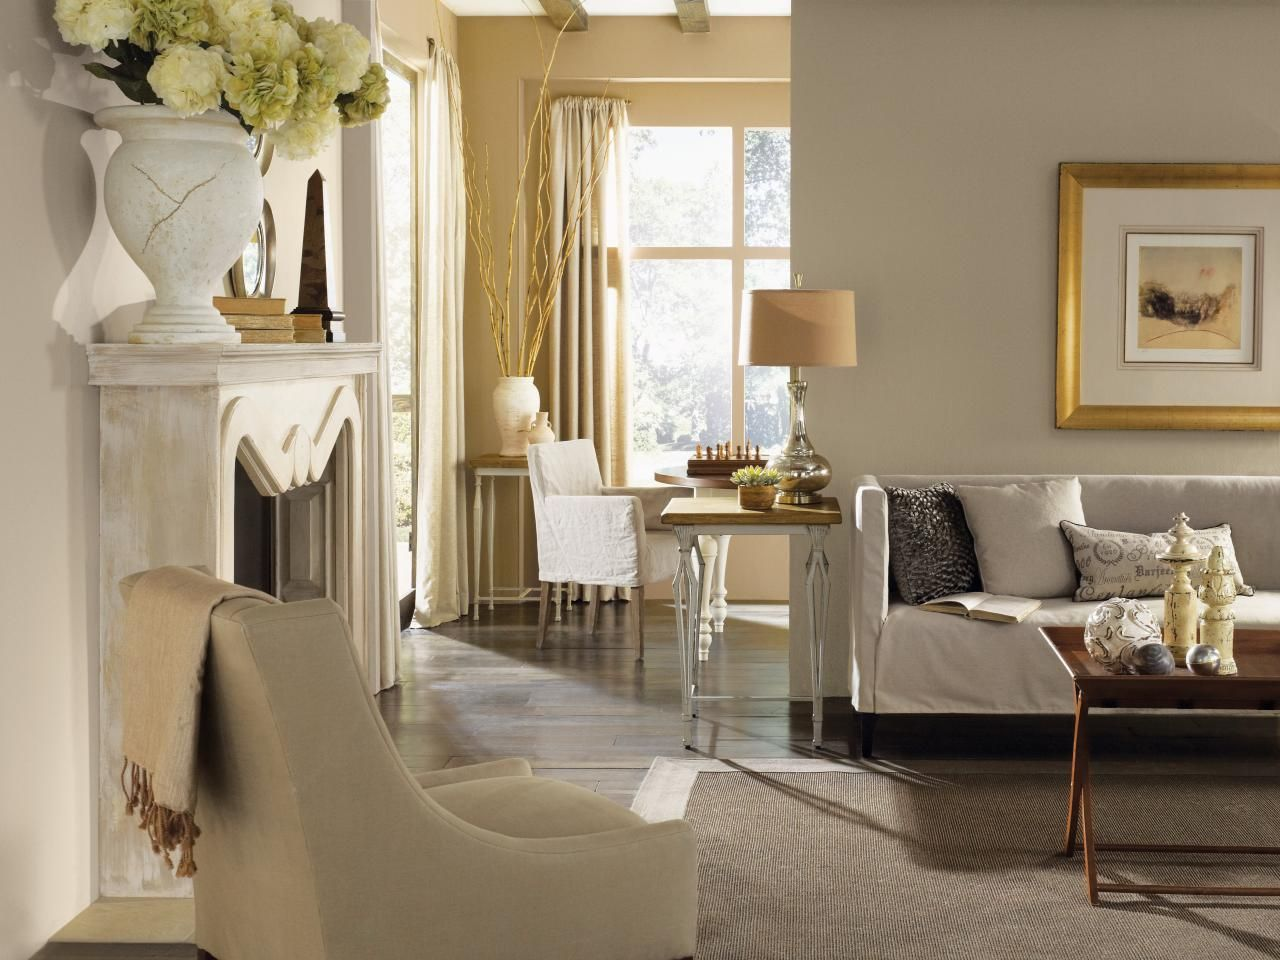 Neutral Colors For Living Room Walls Hgtv Home By Sherwin Williams Paint Is Organized By Palettes To